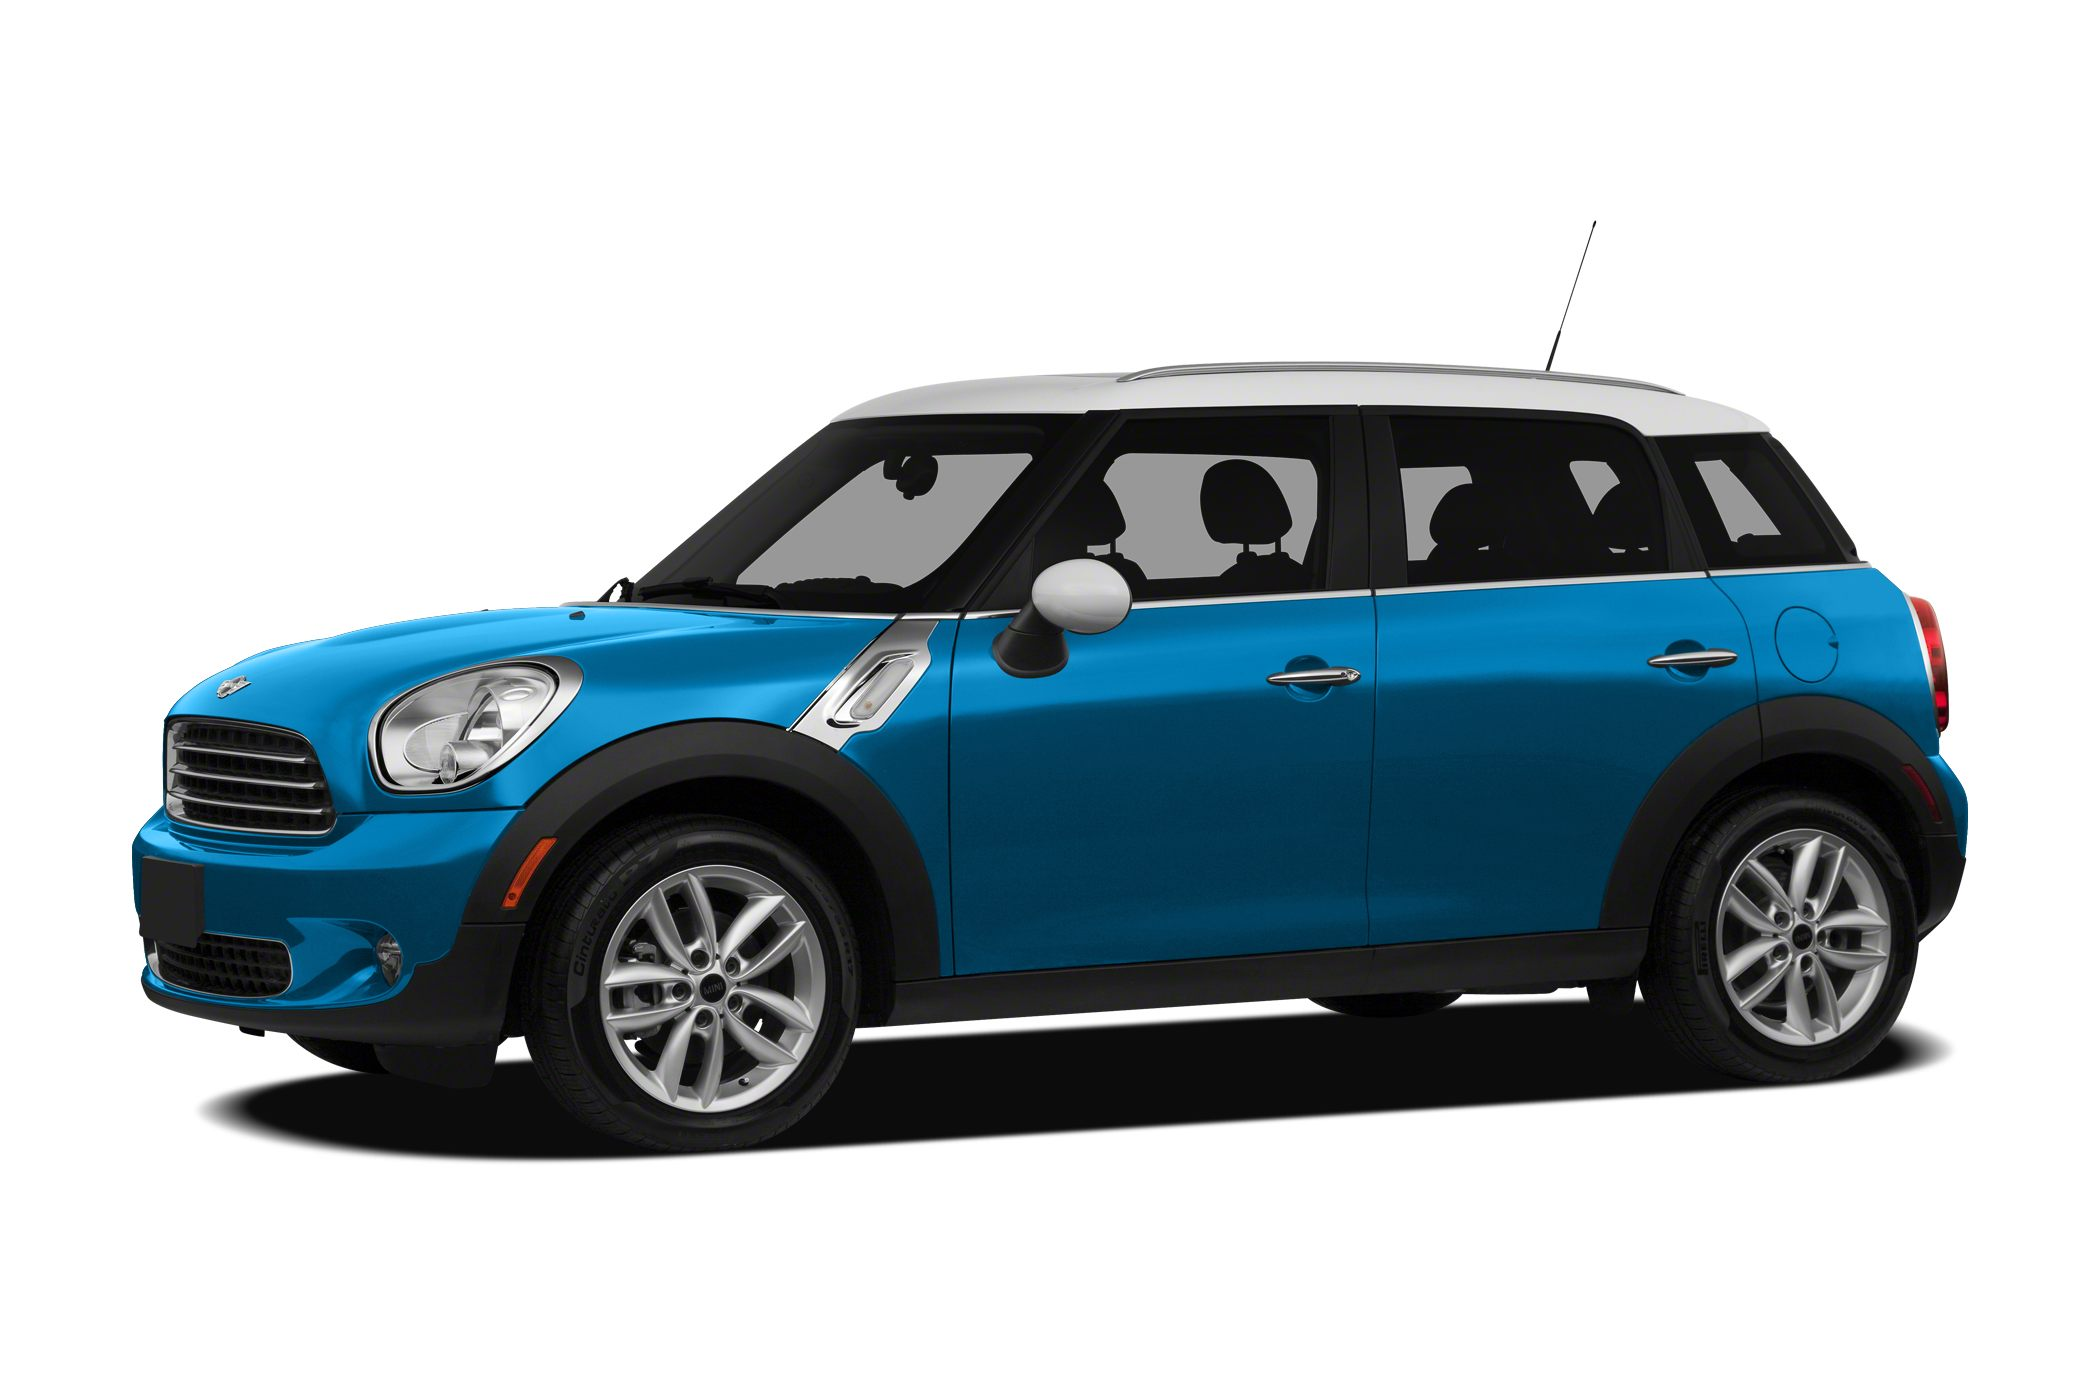 2012 MINI Cooper Countryman OUR PRICESYoure probably wondering why our prices are so much lower